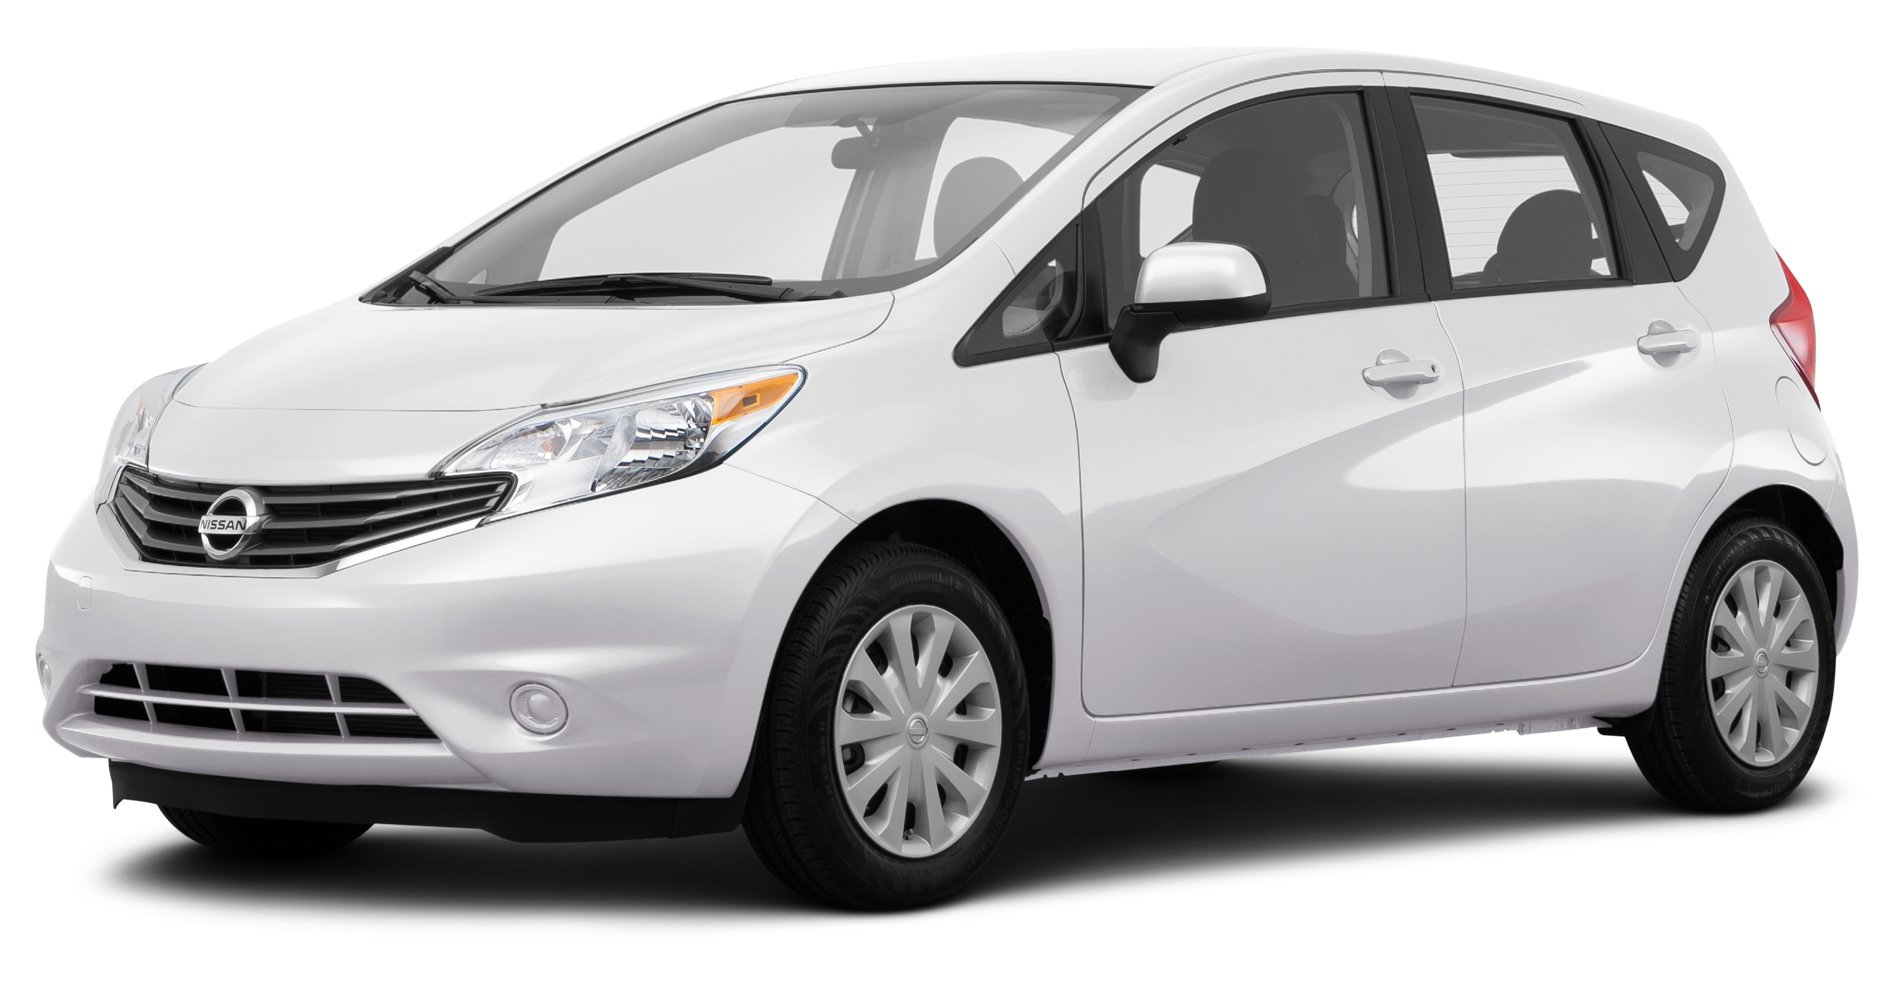 2014 Nissan Versa Note S, 5-Door Hatchback Manual Transmission 1.6 ...